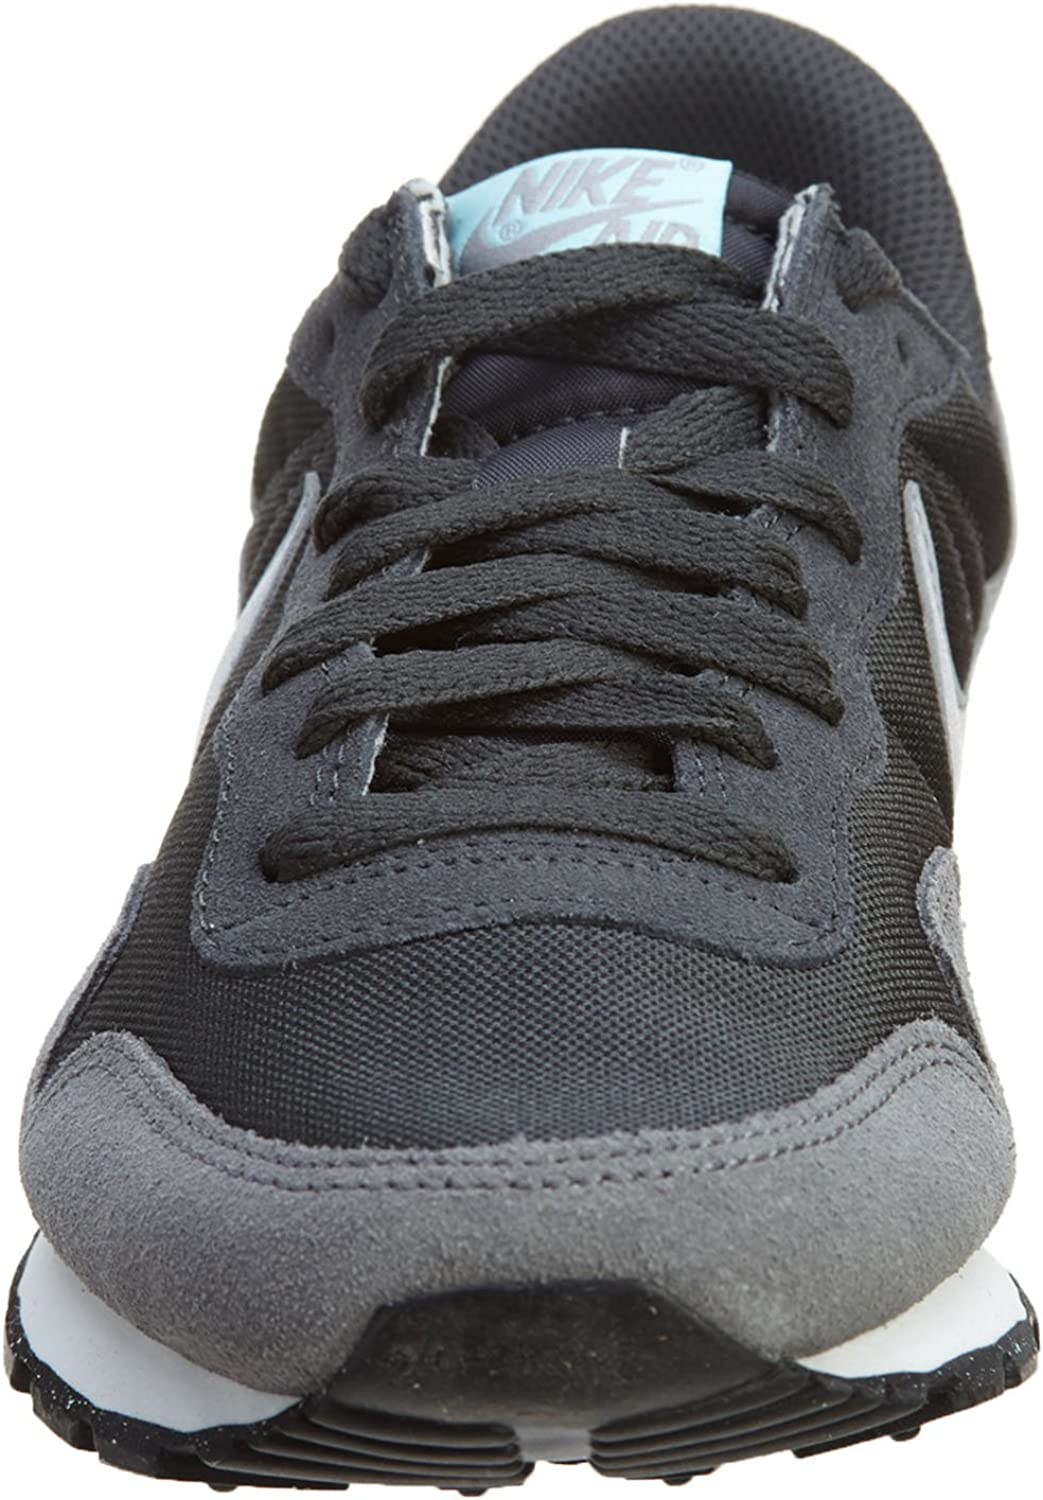 Nike Air Pegasus 83, Hombre Sport & Outdoor Guantes, Anthrazit (Anthracite/Wolf Grey/Cool Grey), 40.5: Amazon.es: Deportes y aire libre